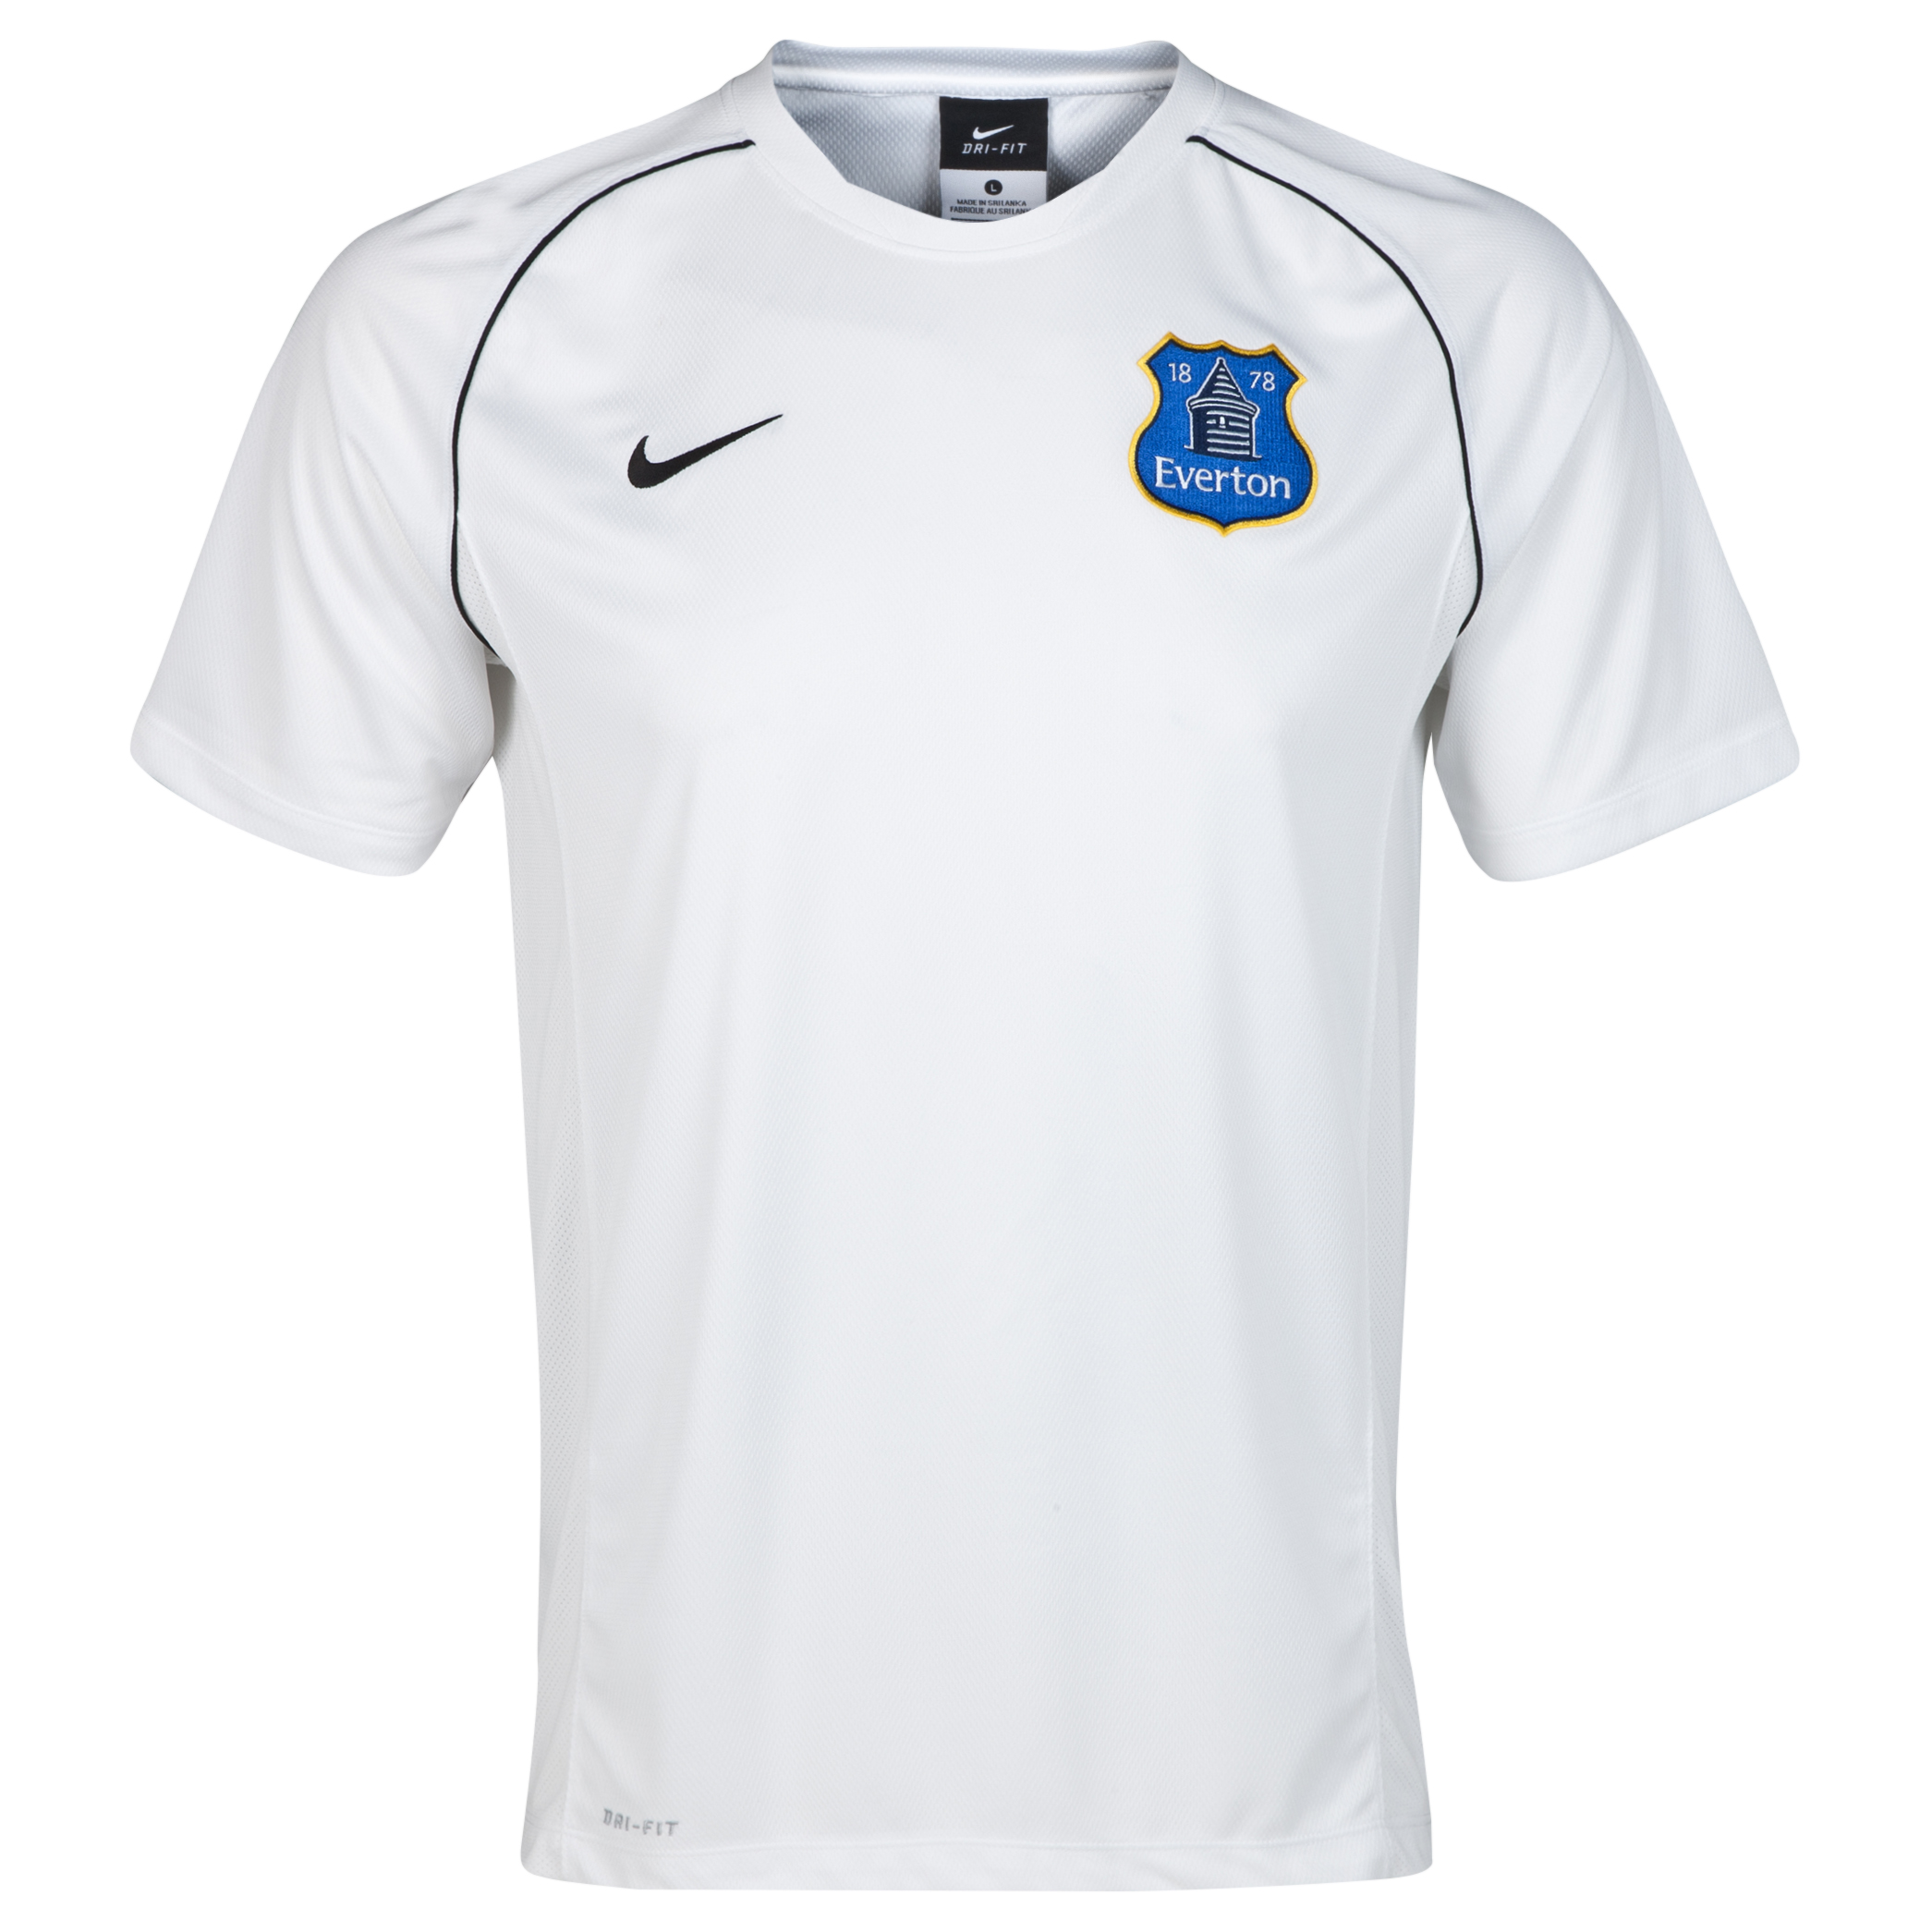 Everton Training Top - White/Black